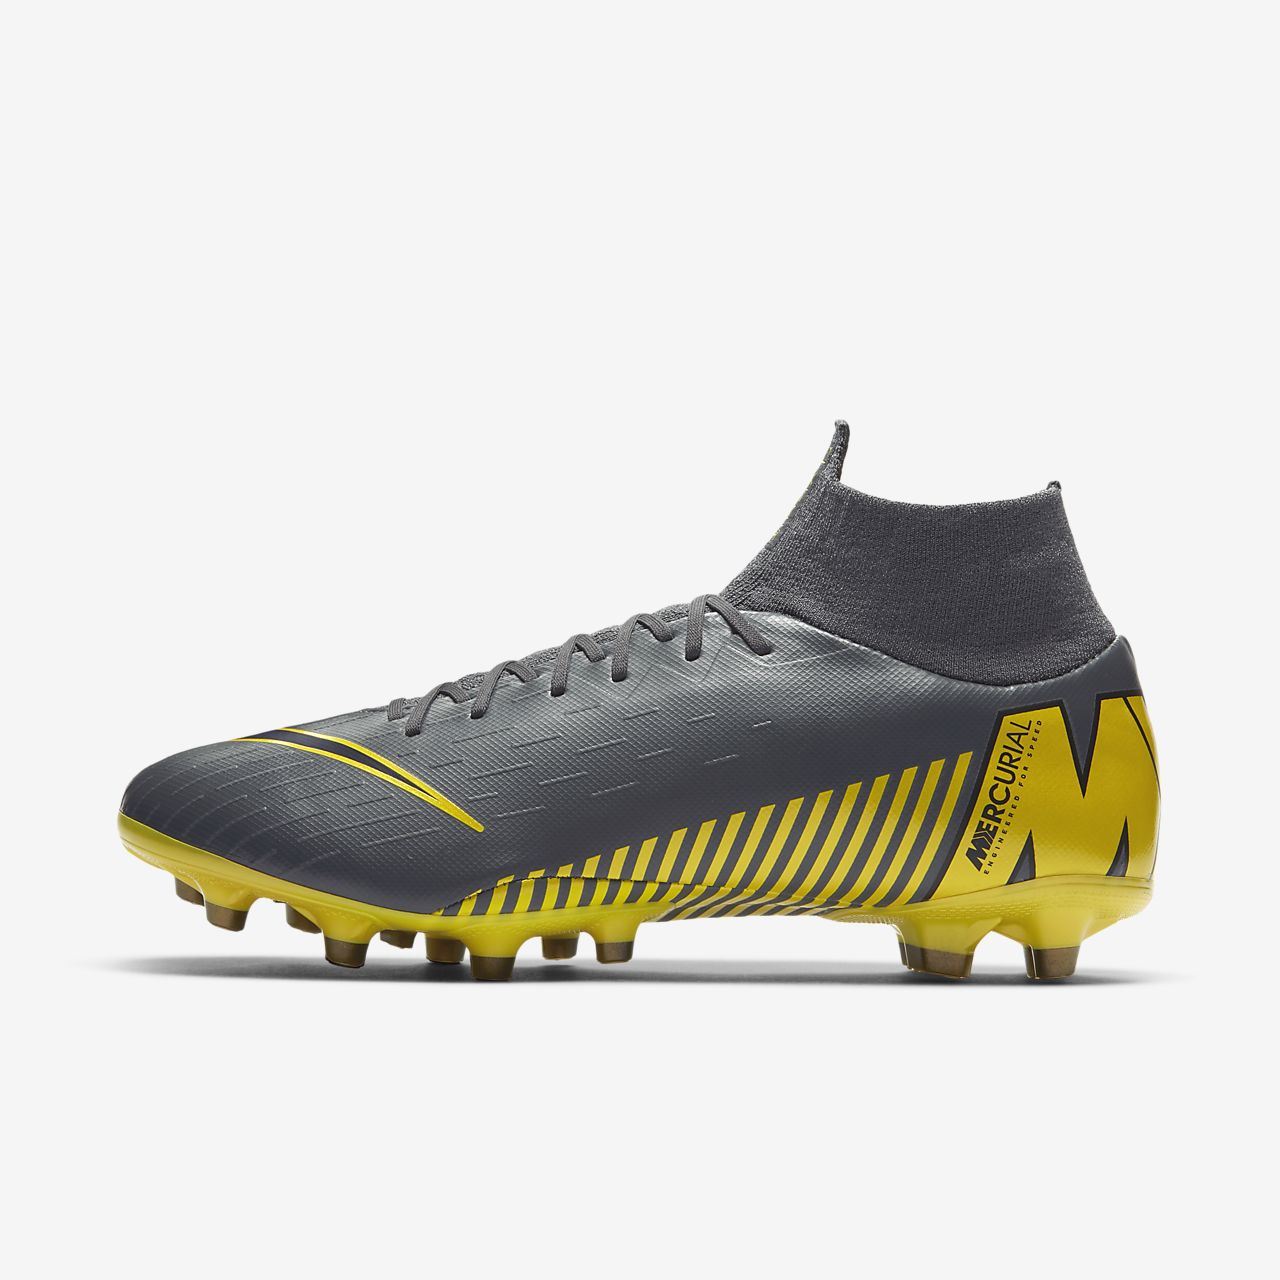 Nike Mercurial Superfly VI Pro AG-PRO Artificial-Grass Football Boot ... cea56848b